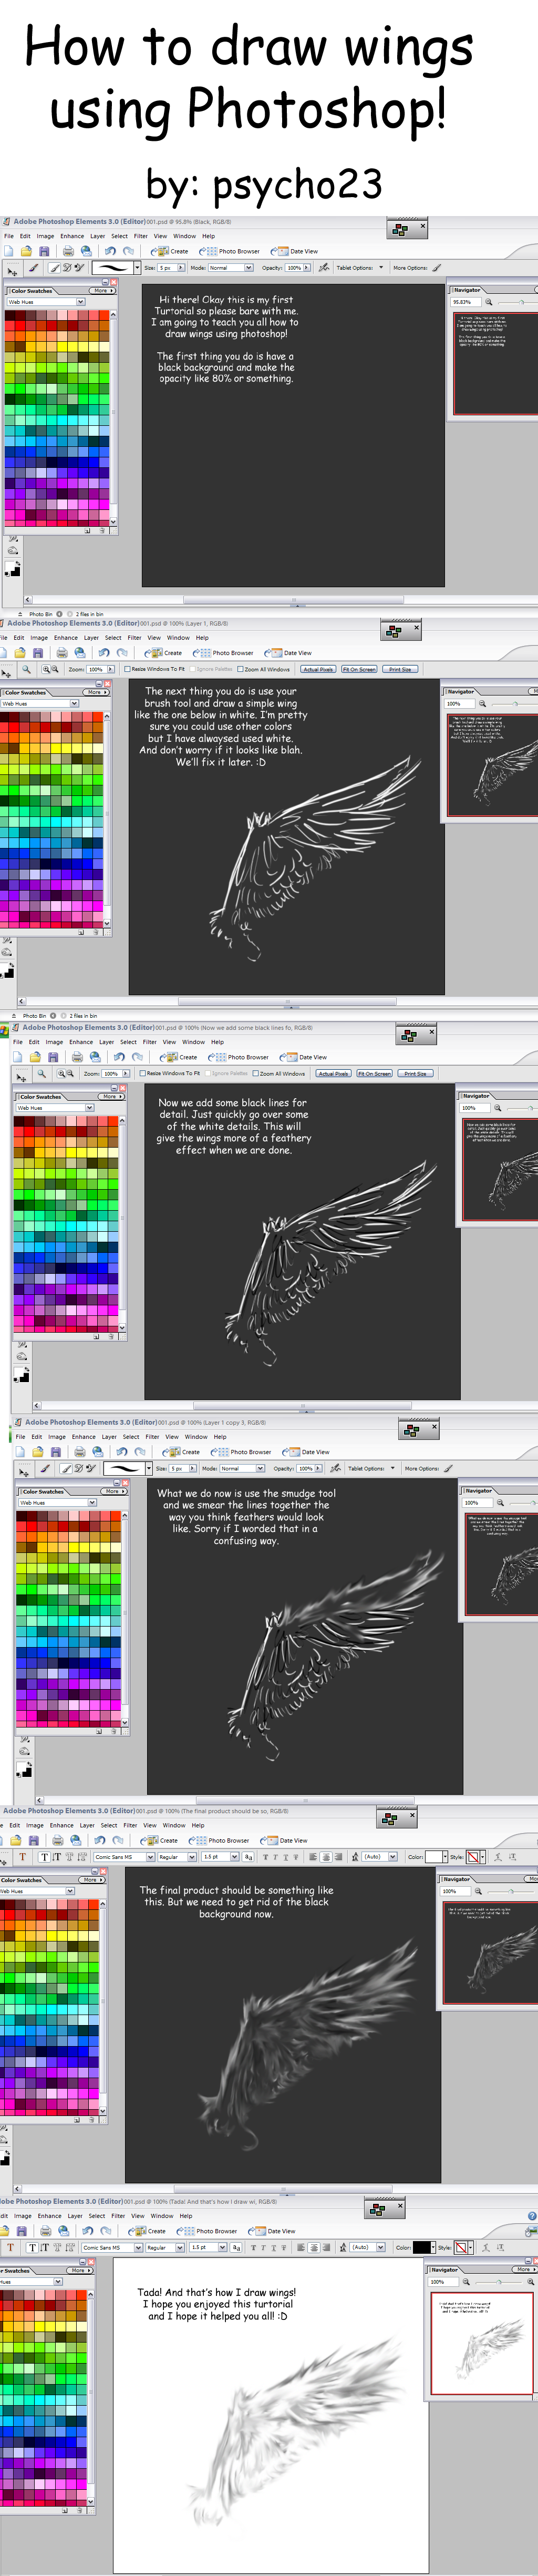 How to Draw Wings in Photoshop by psycho23